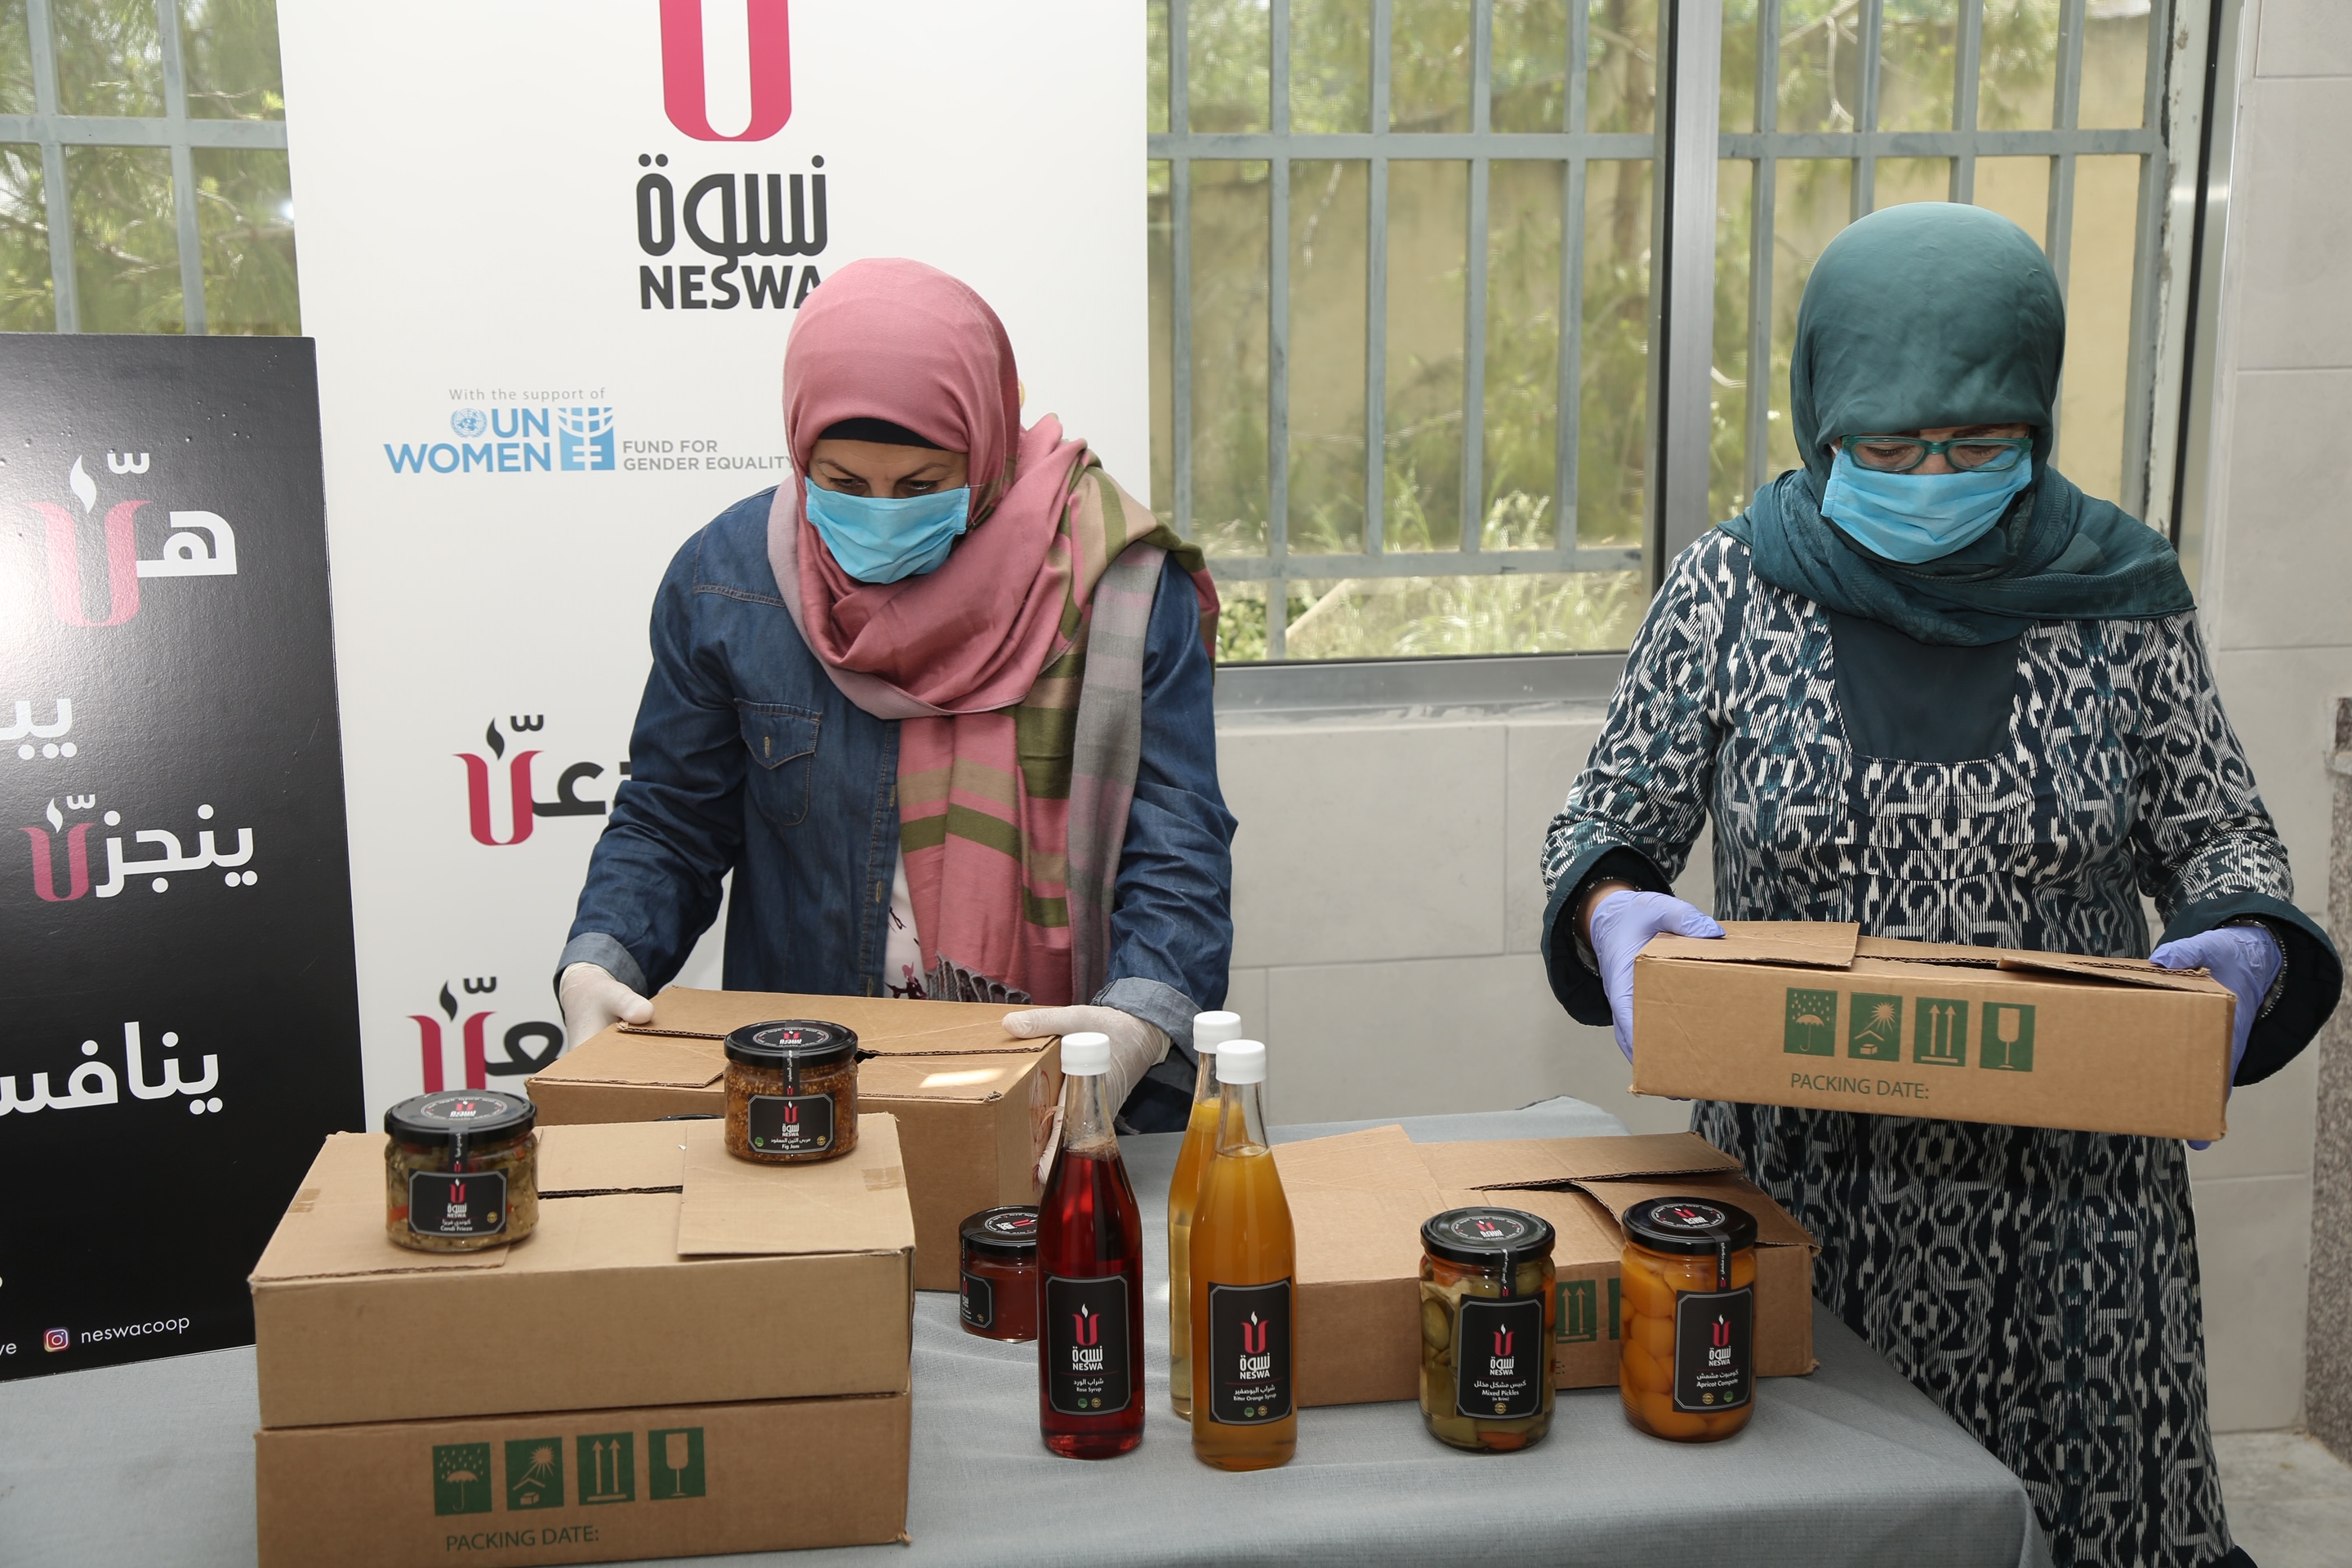 Rural women social enterprise supports communities amid the COVID-19 crisis in Lebanon